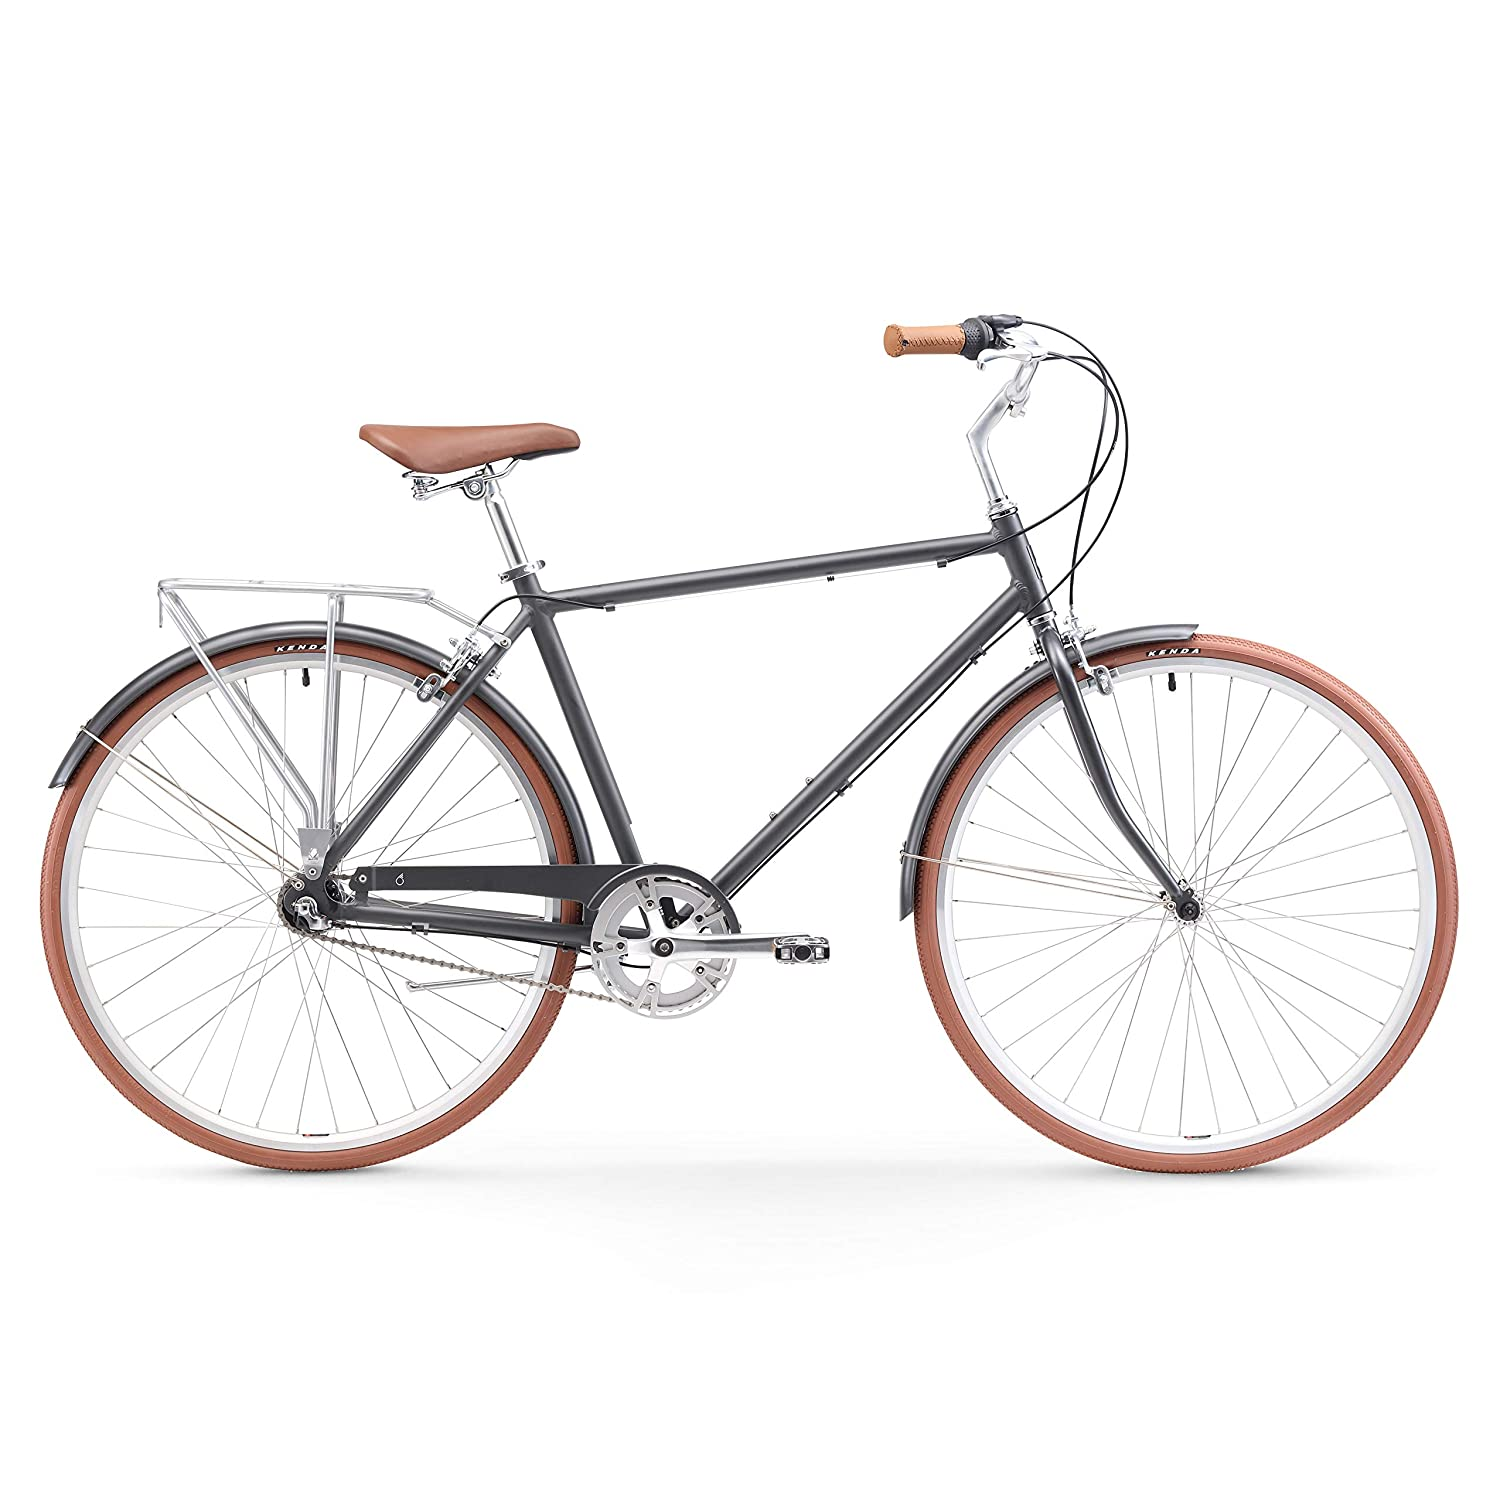 sixthreezero Ride in The Park Mens Touring City Road Bicycle with Rear Rack